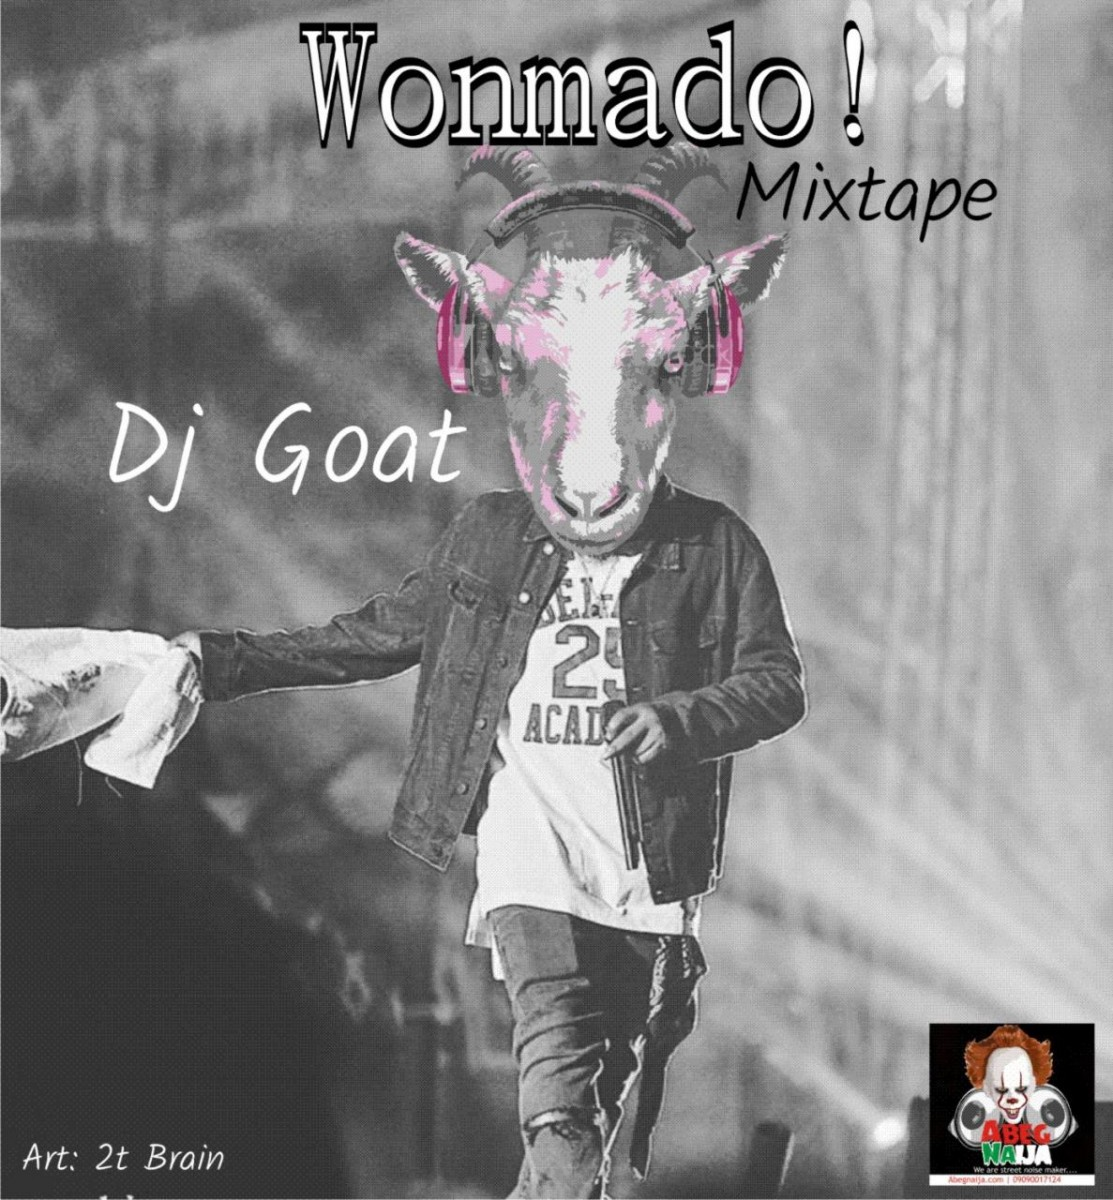 HOT MIX: Dj Goat - Wonmado Mixtape